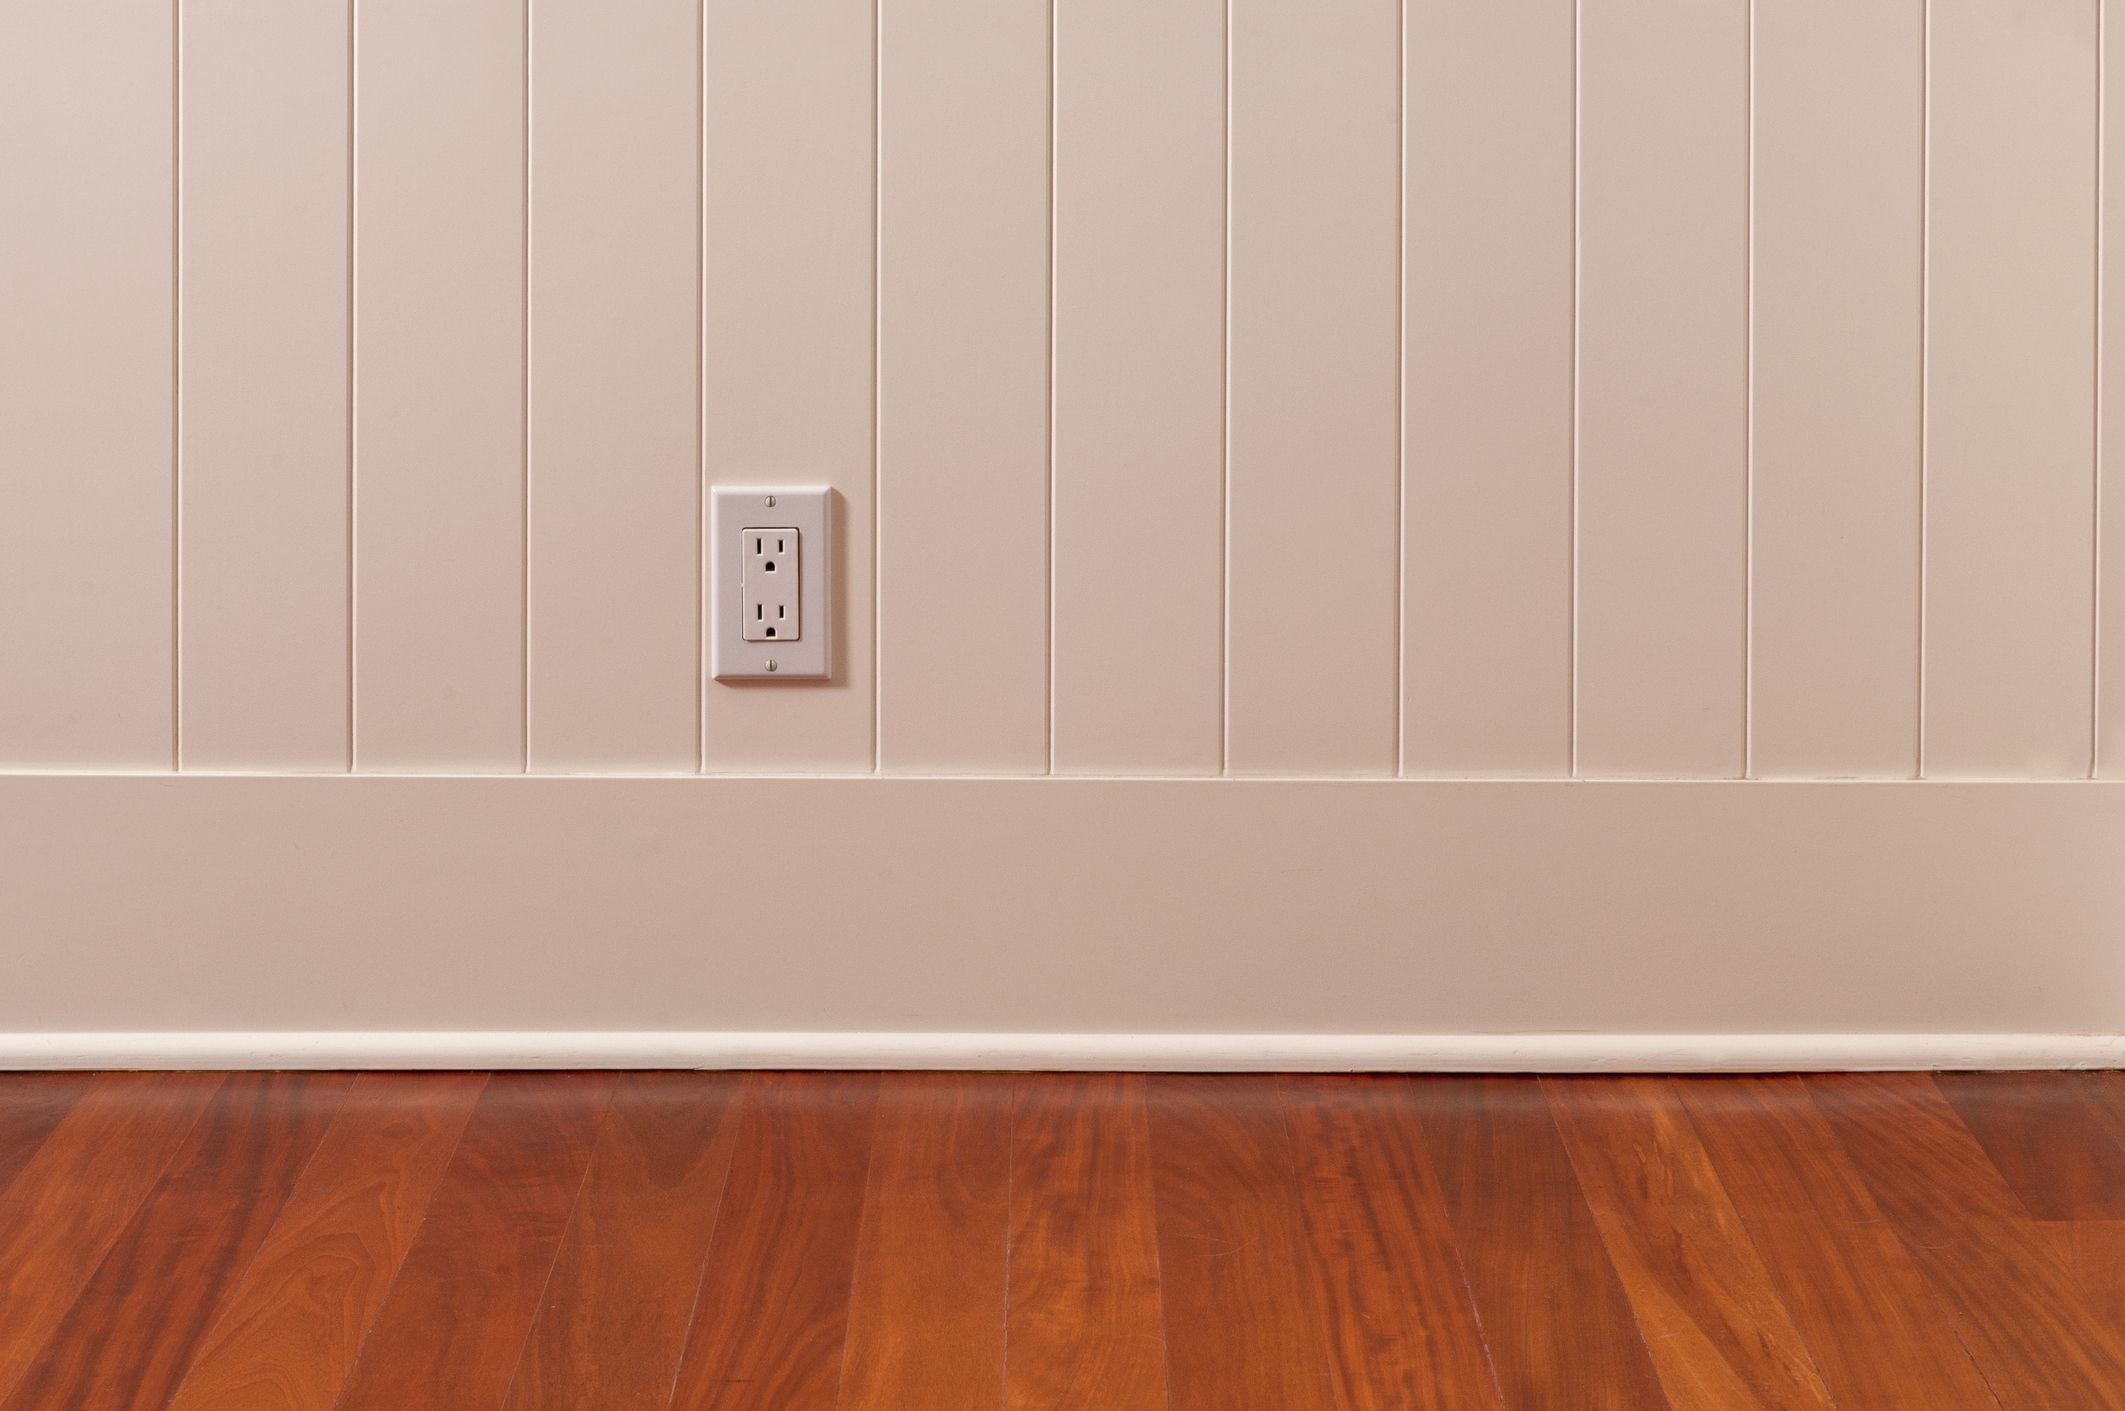 hardwood flooring bend oregon of how to install shoe molding or quarter round molding pertaining to quarter round installed on baseboard 164003254 57a500d85f9b58974a84b0f6